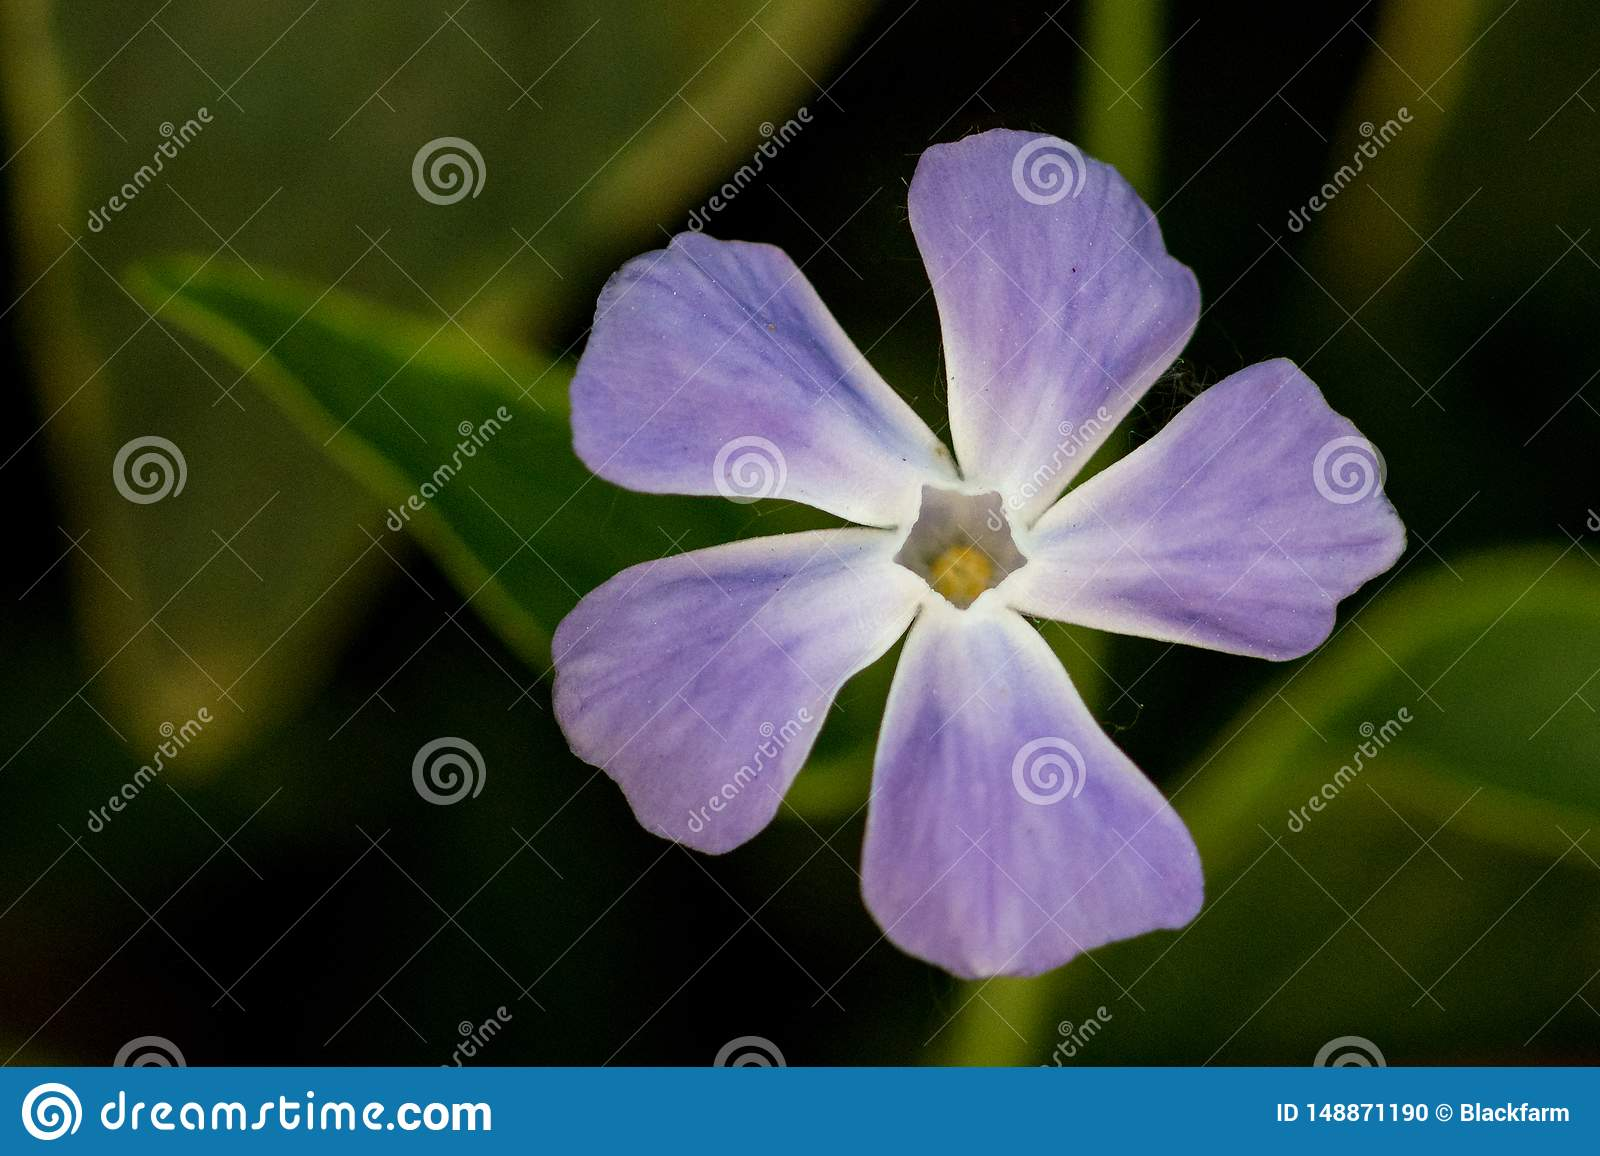 Violet And White Flowers In The Garden Stock Photo , Image